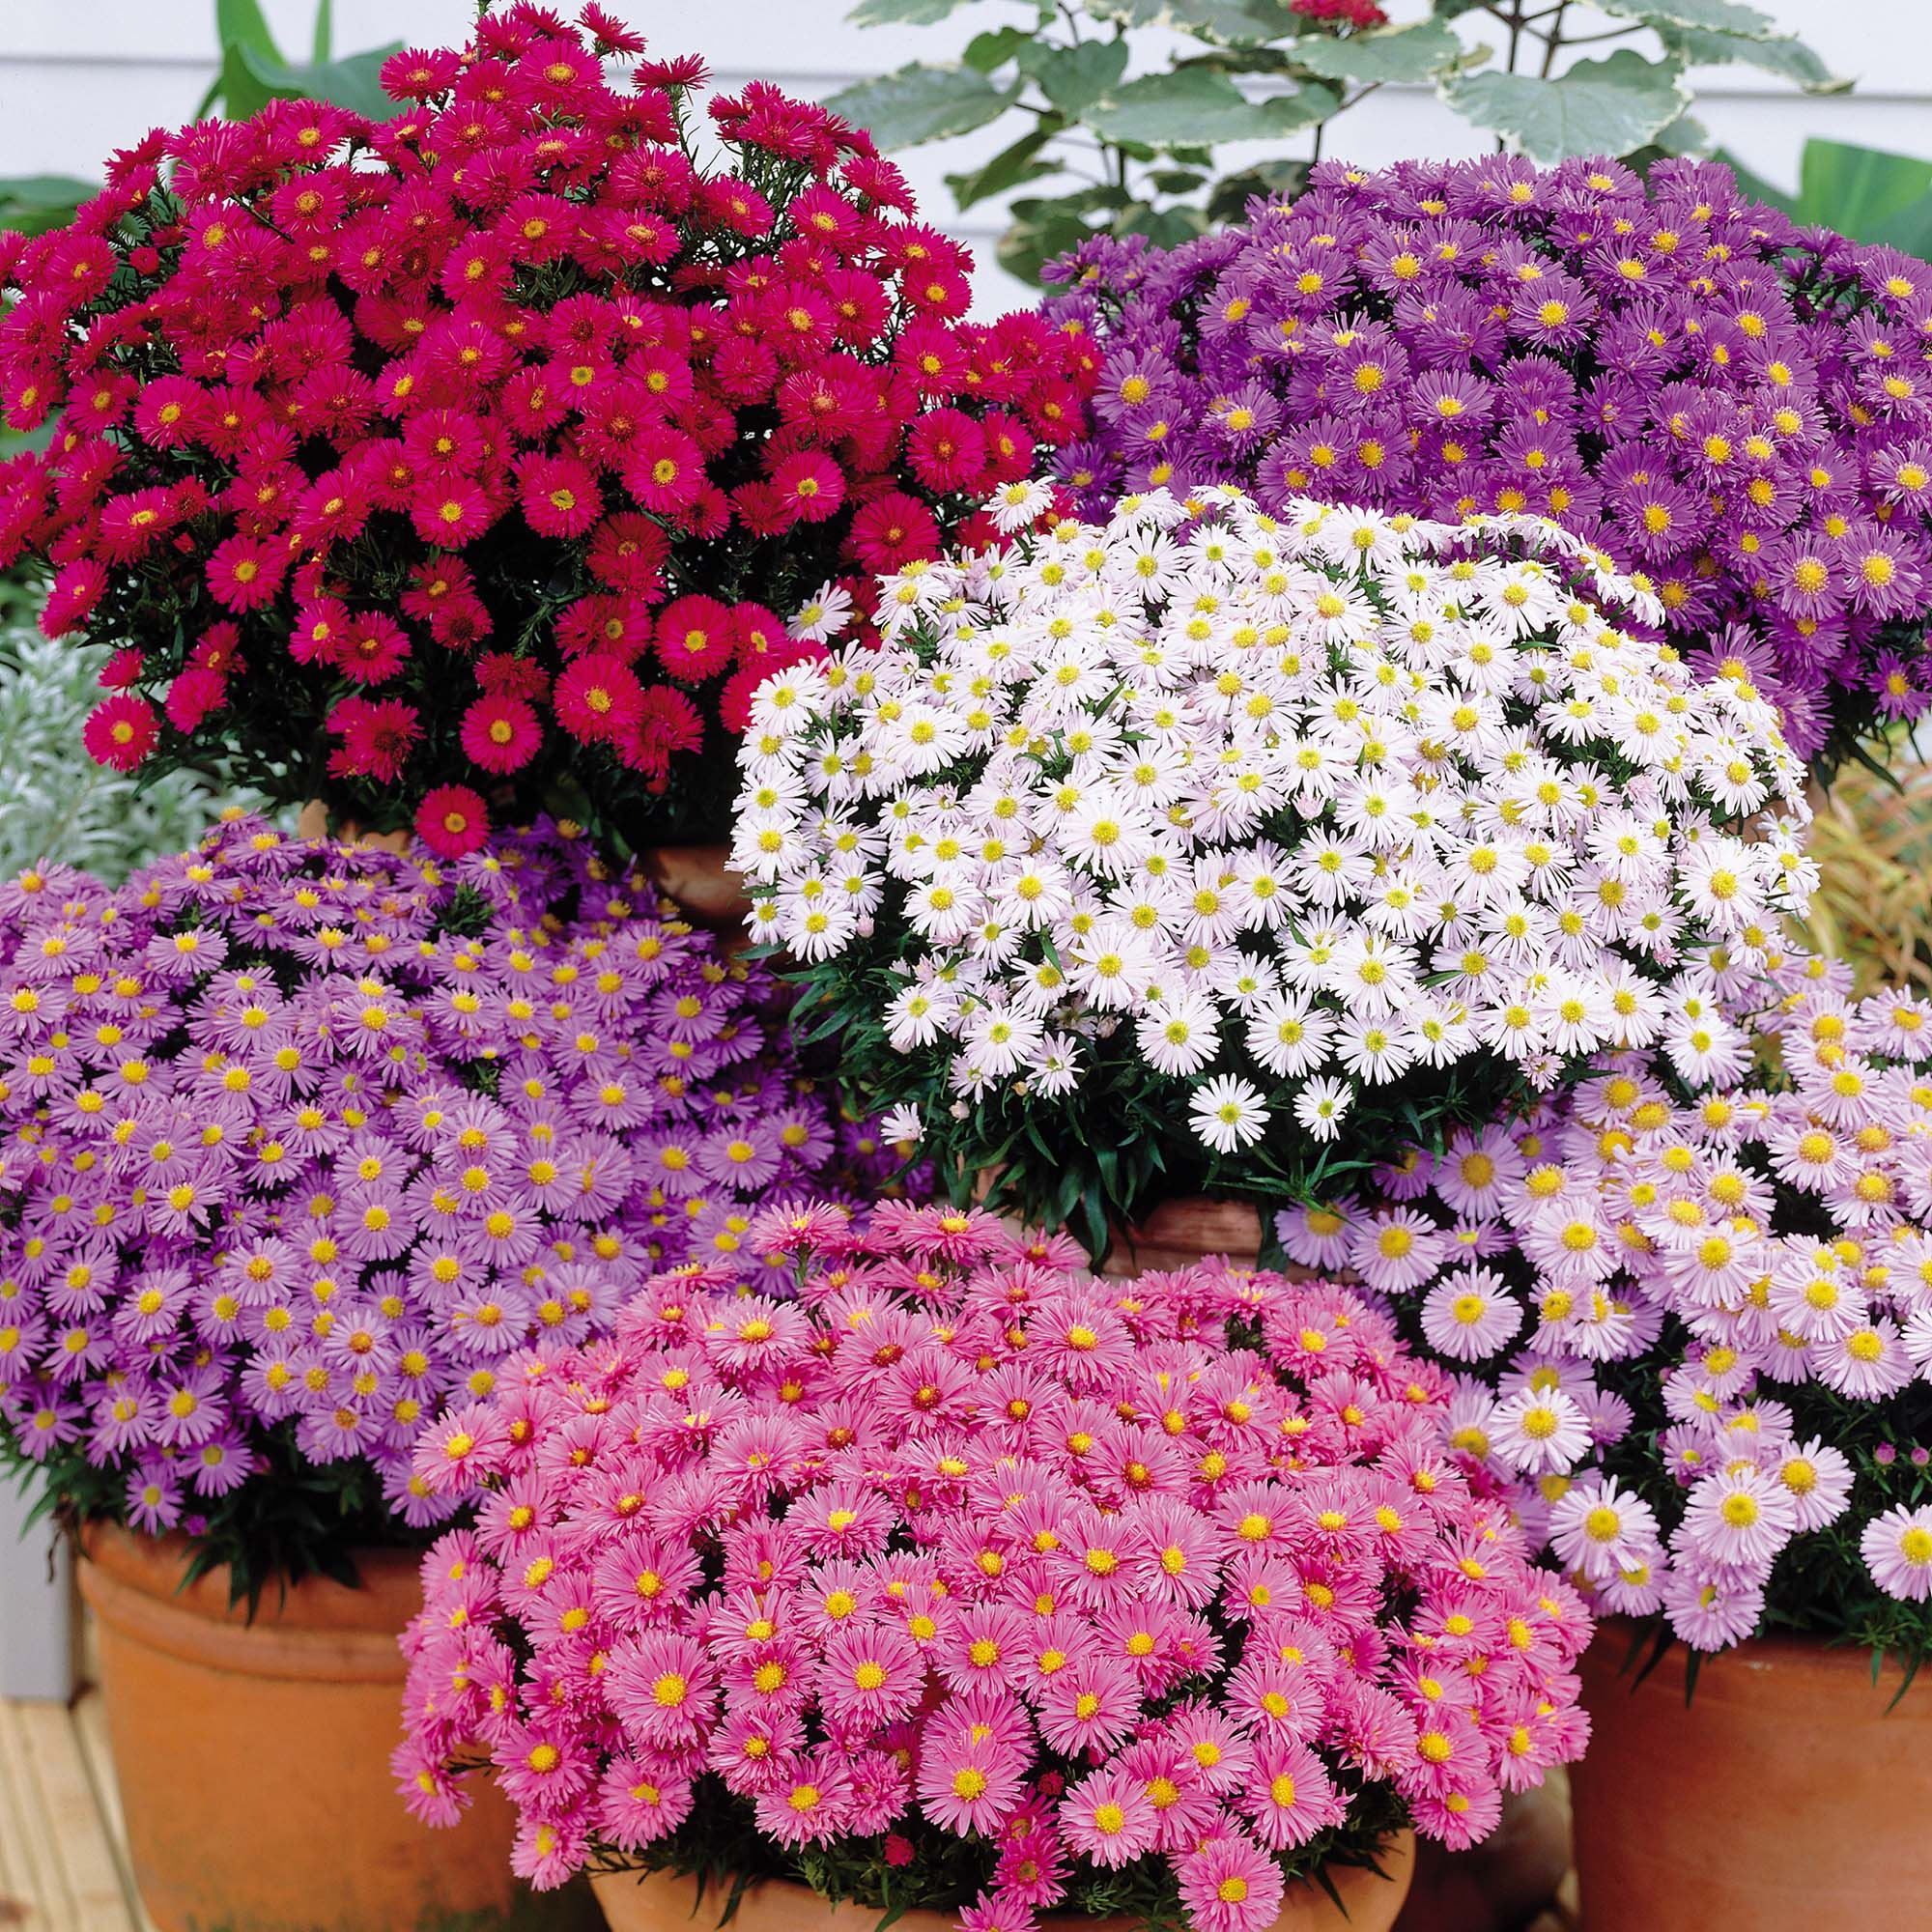 Image of Aster dumosus Collection